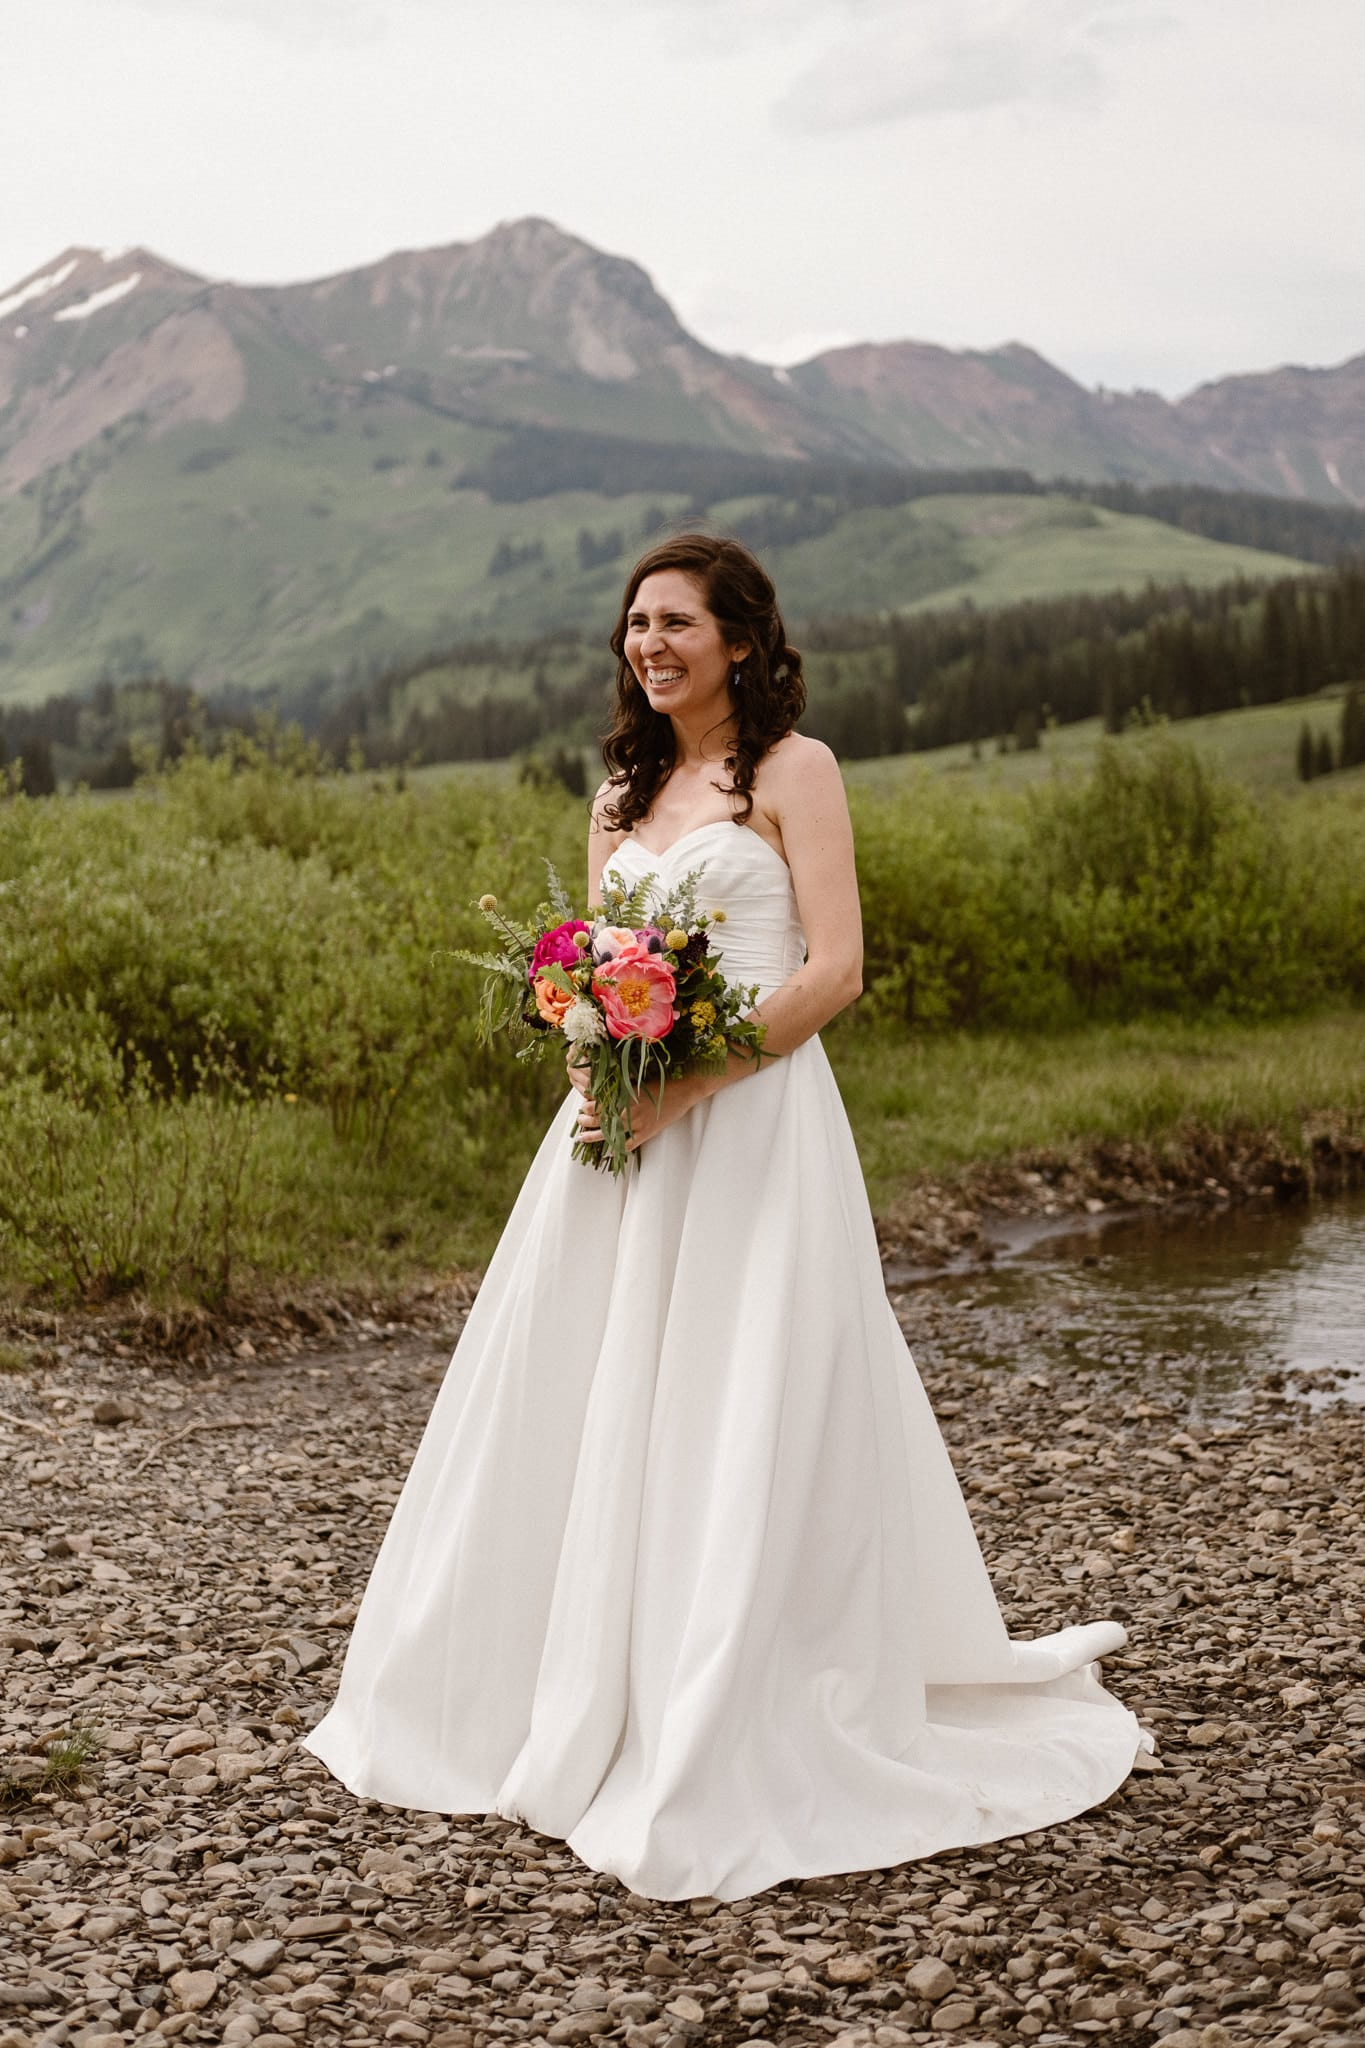 Crested Butte elopement photographer, Colorado adventure wedding photographer, bride and groom mountain portraits